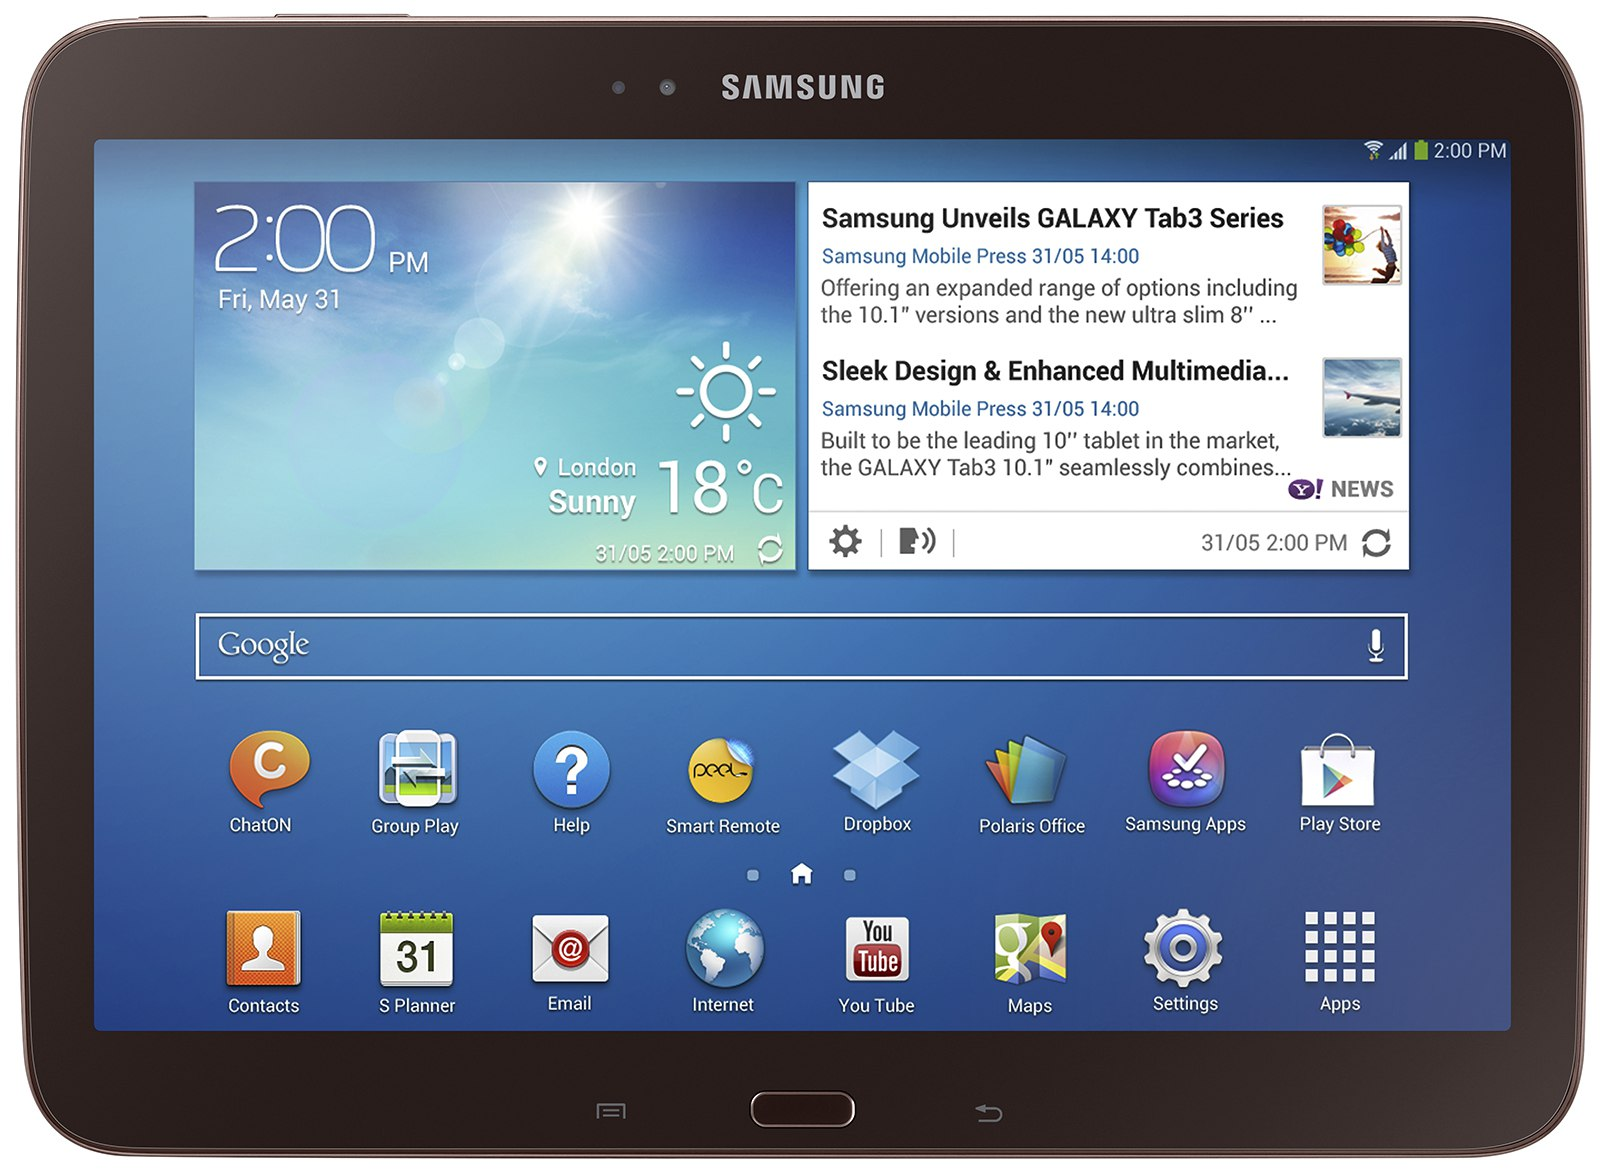 Tablet samsung galaxy 3 root the samsung galaxy tab 3 - Tablet Samsung Galaxy 3 Root The Samsung Galaxy Tab 3 6